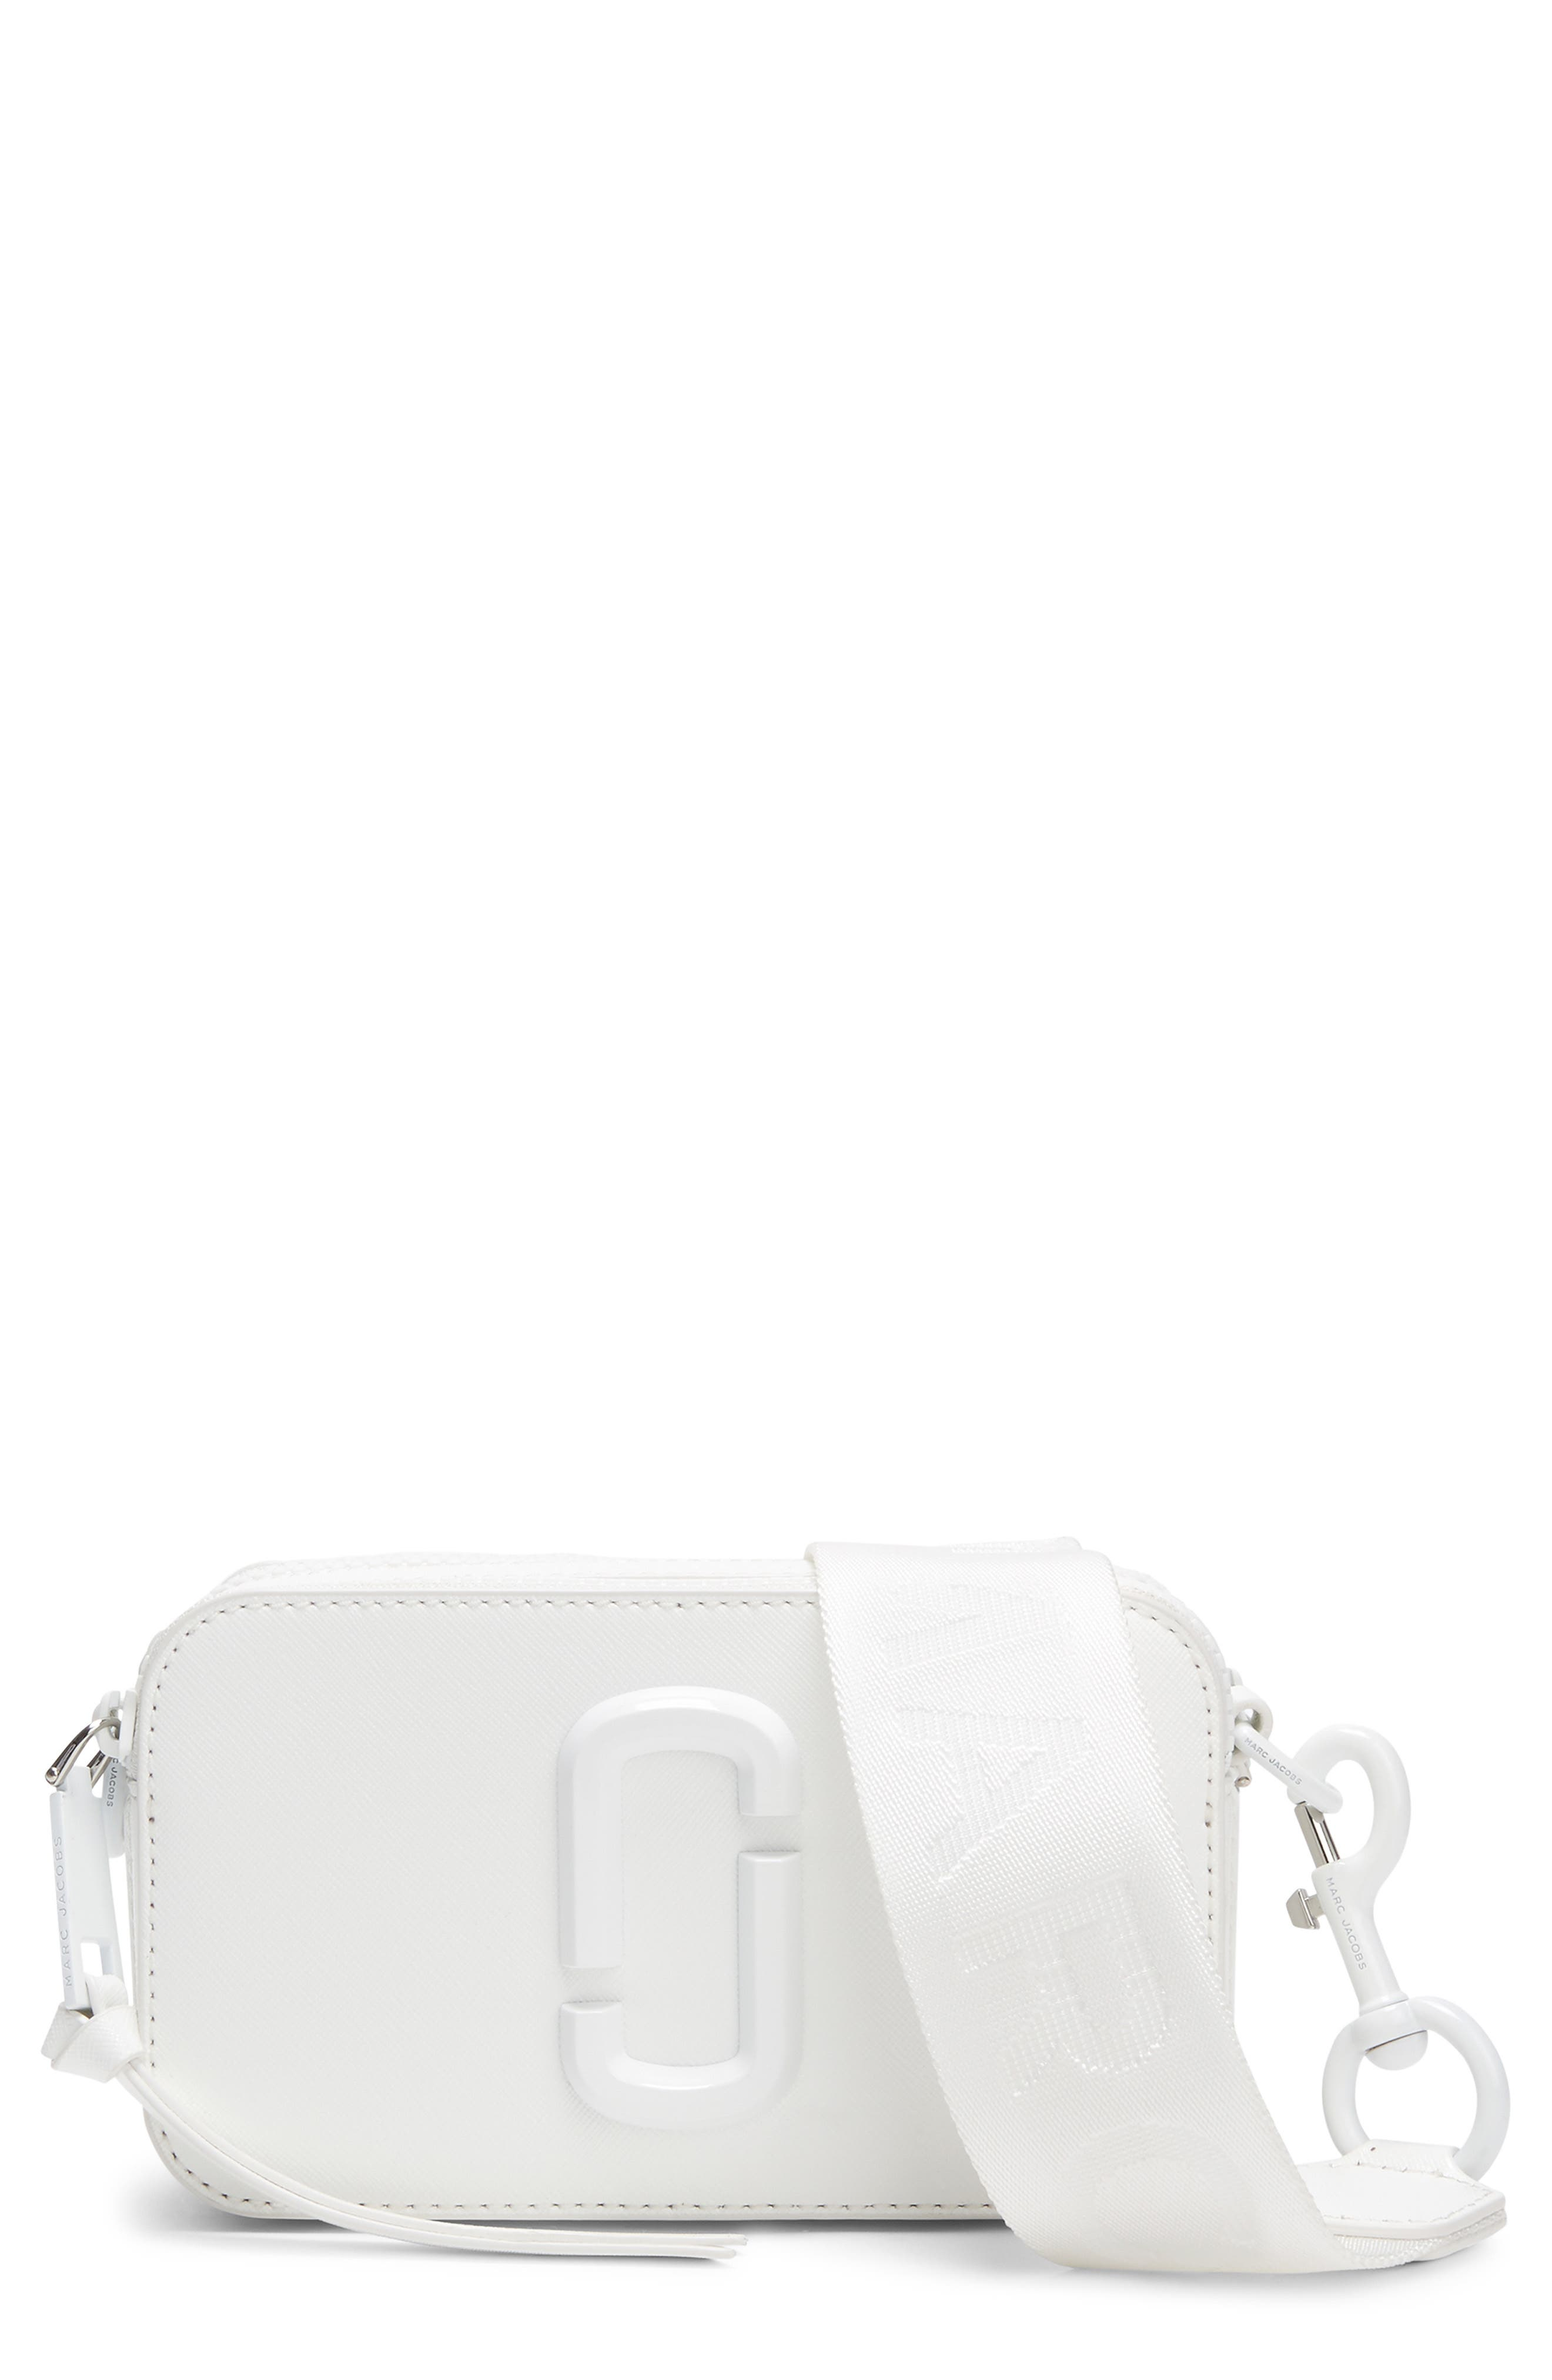 MARC JACOBS Snapshot Leather Crossbody Bag, Main, color, MOON WHITE